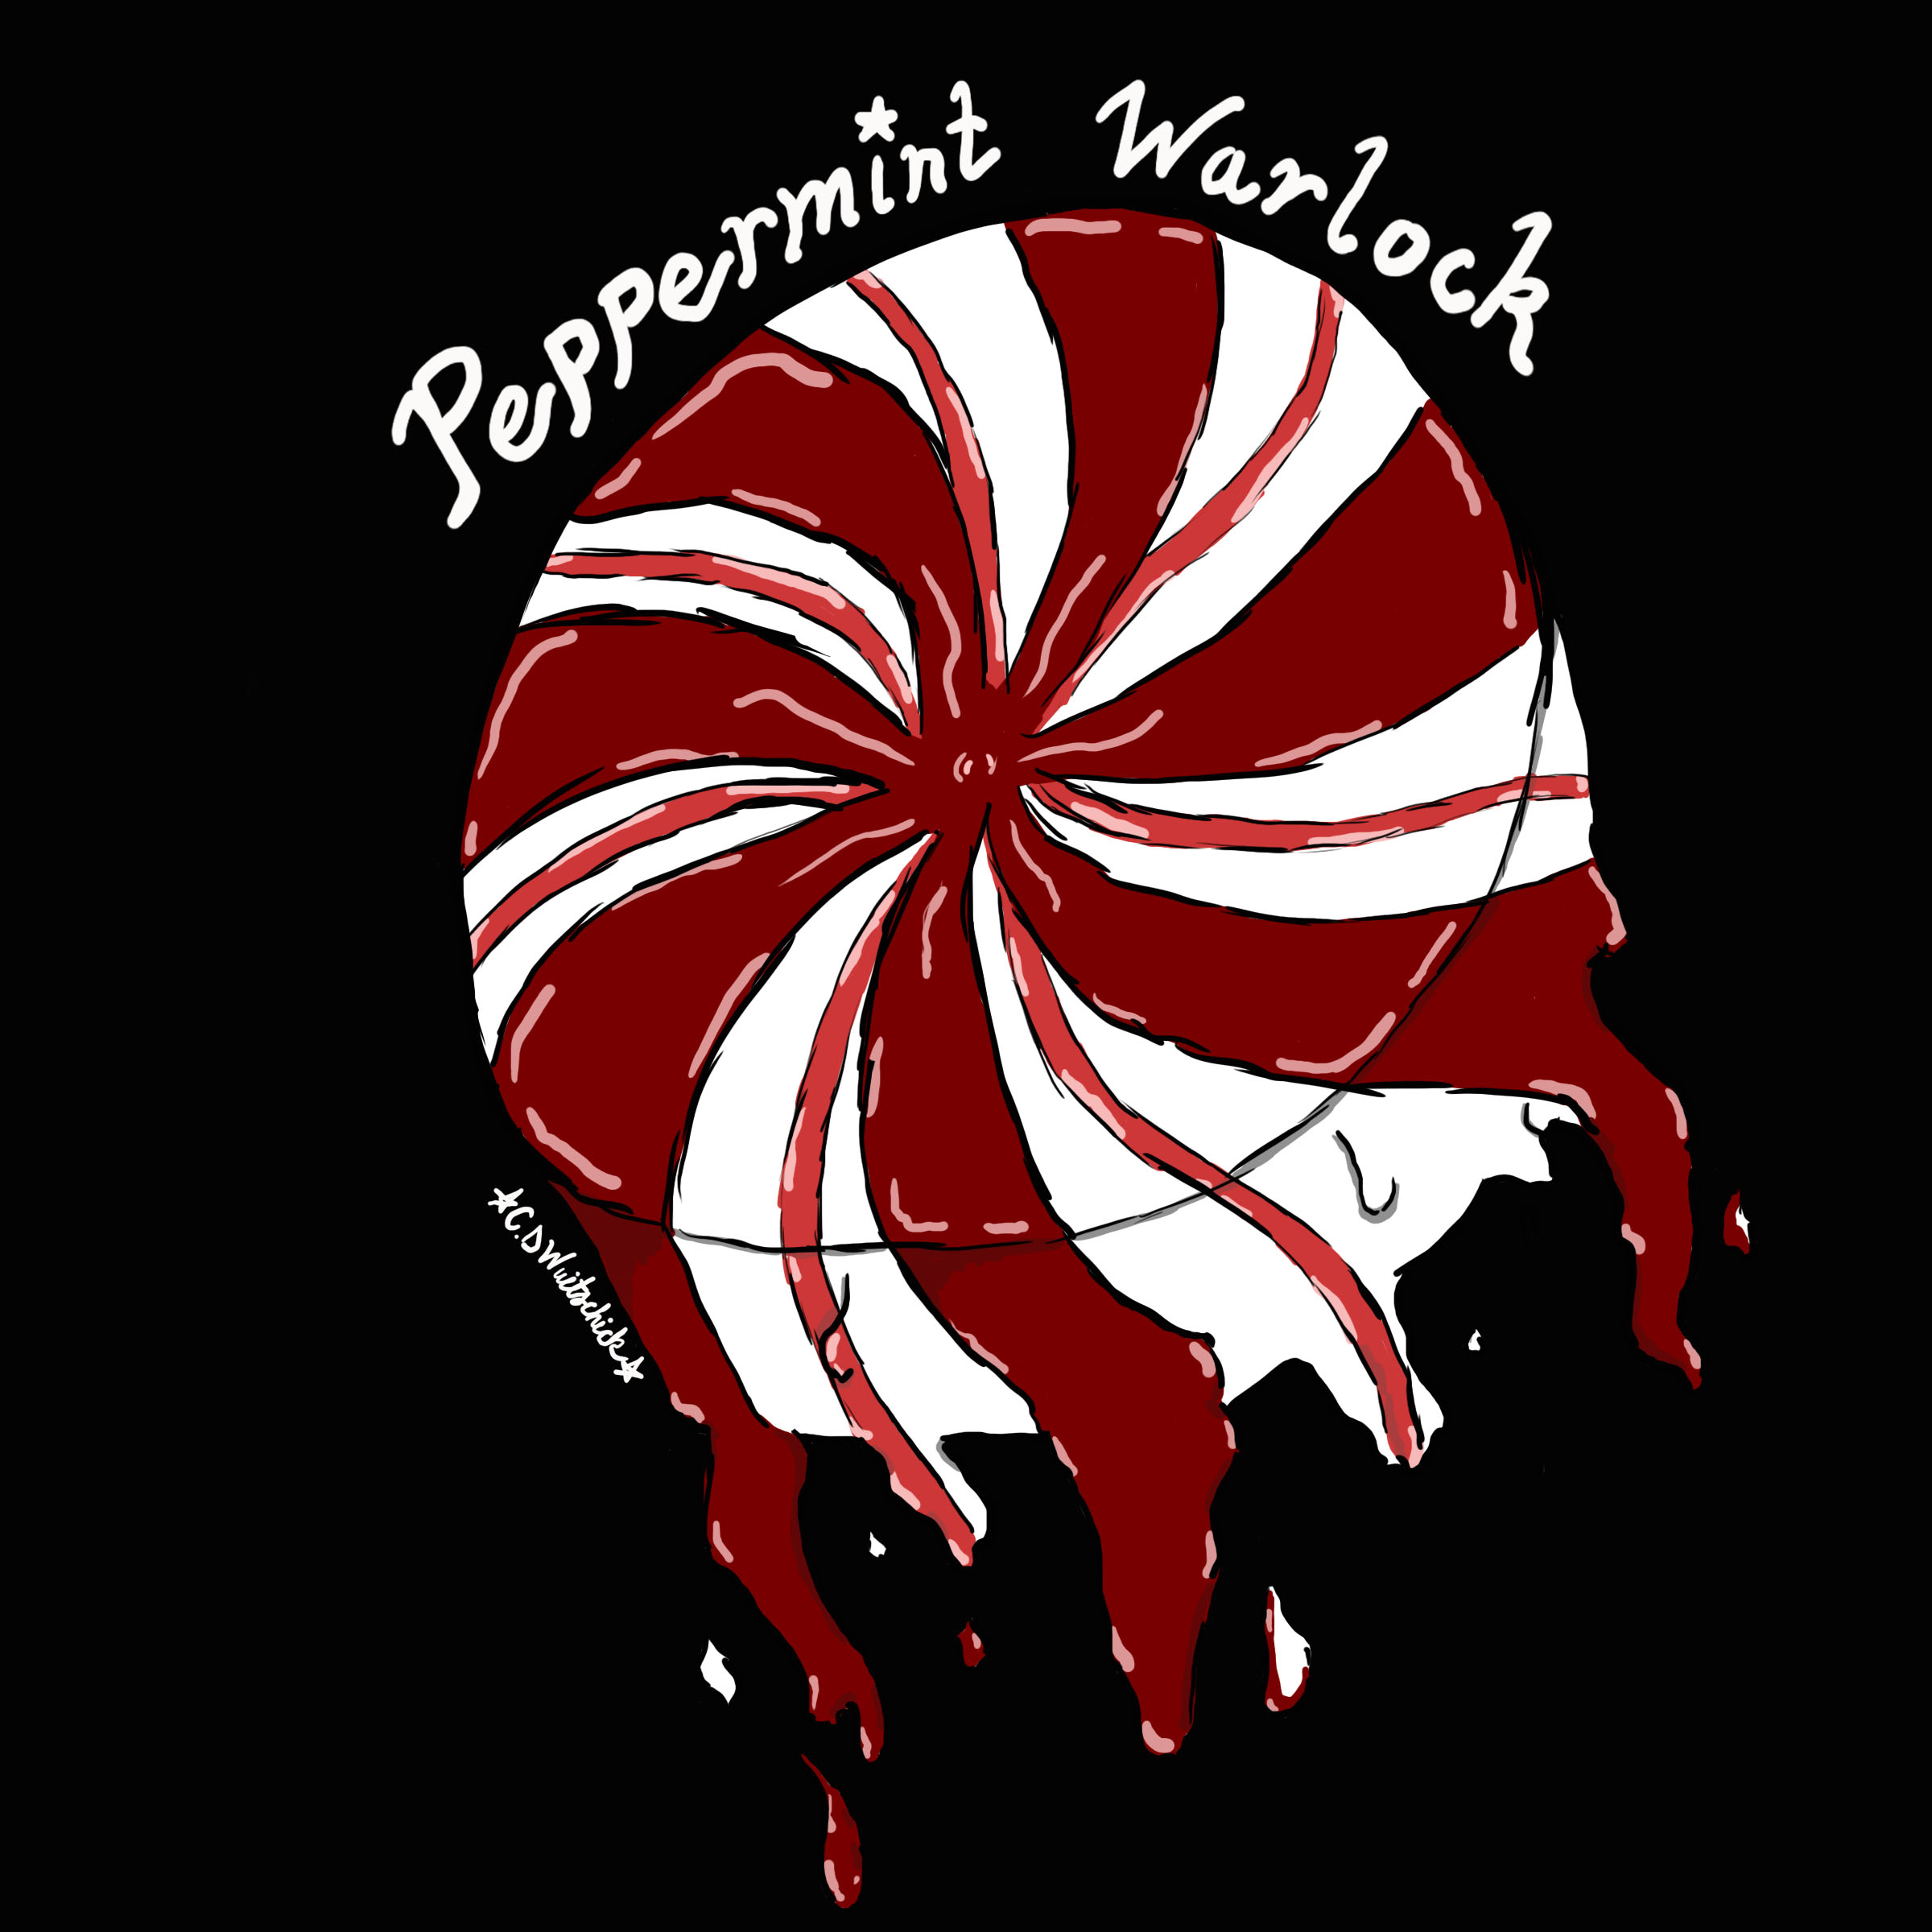 Peppermint Warlock